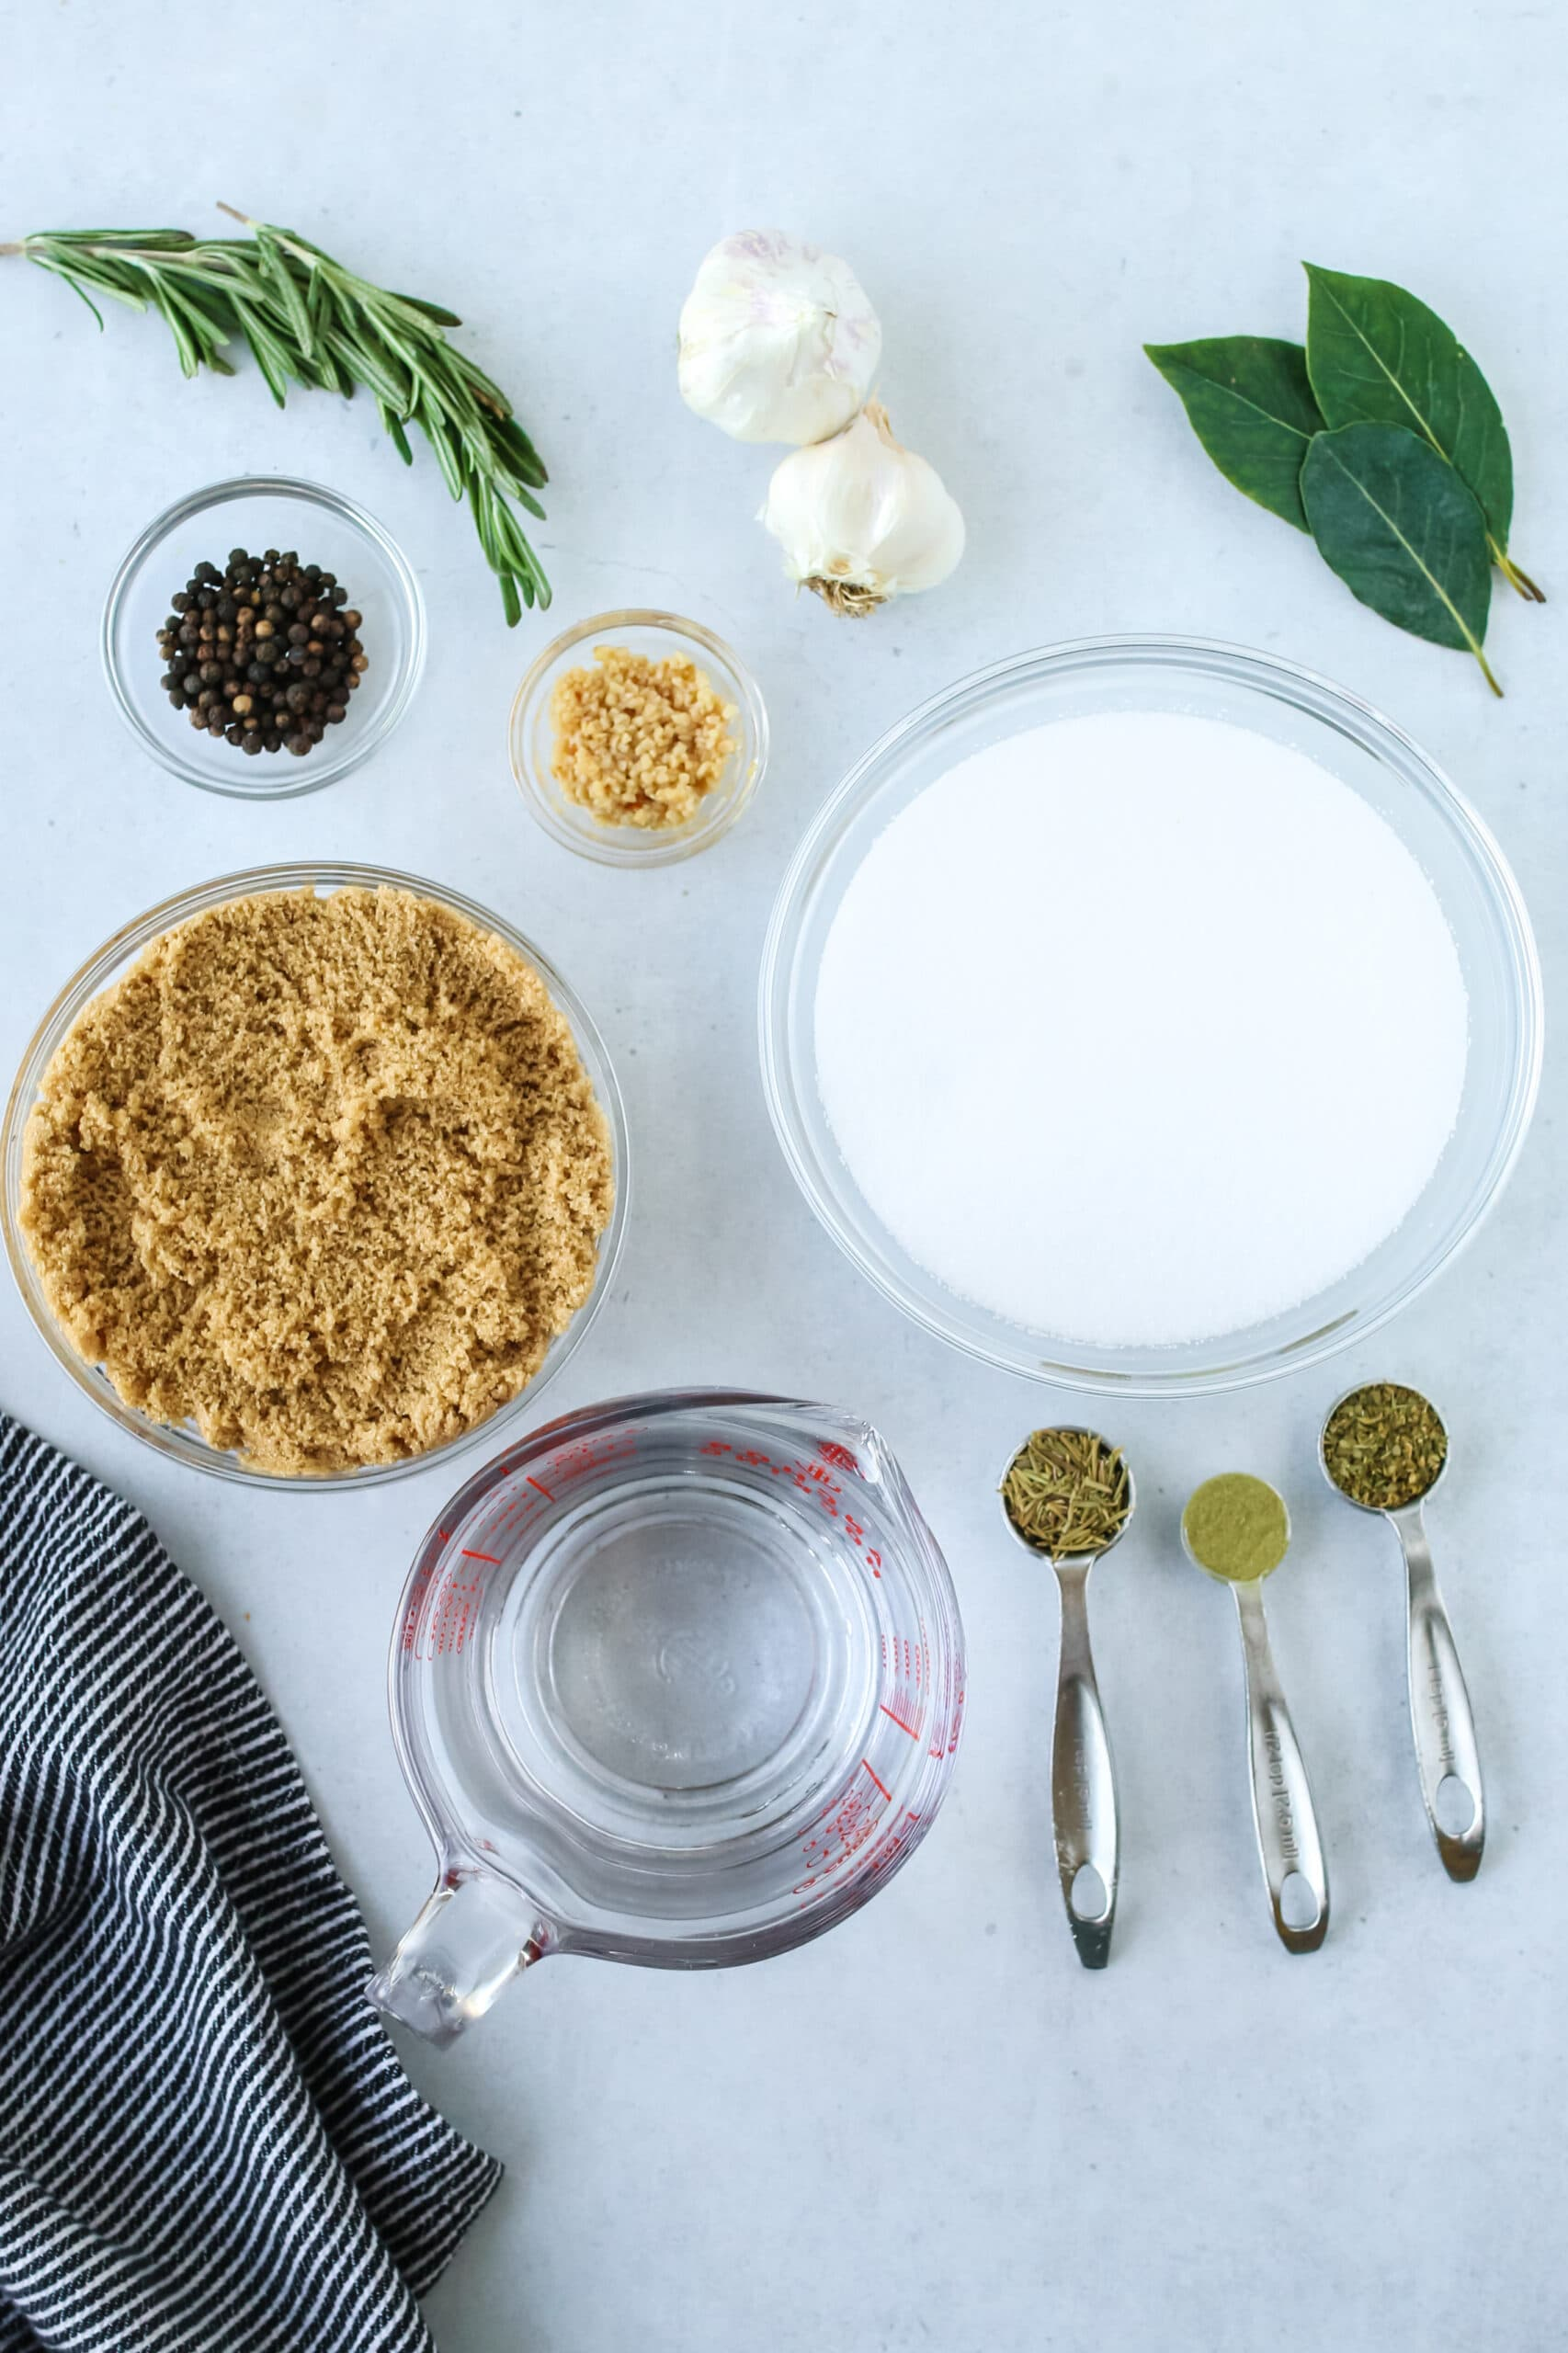 Brined Turkey - all seasonings and ingredients laid out to brine a turkey.